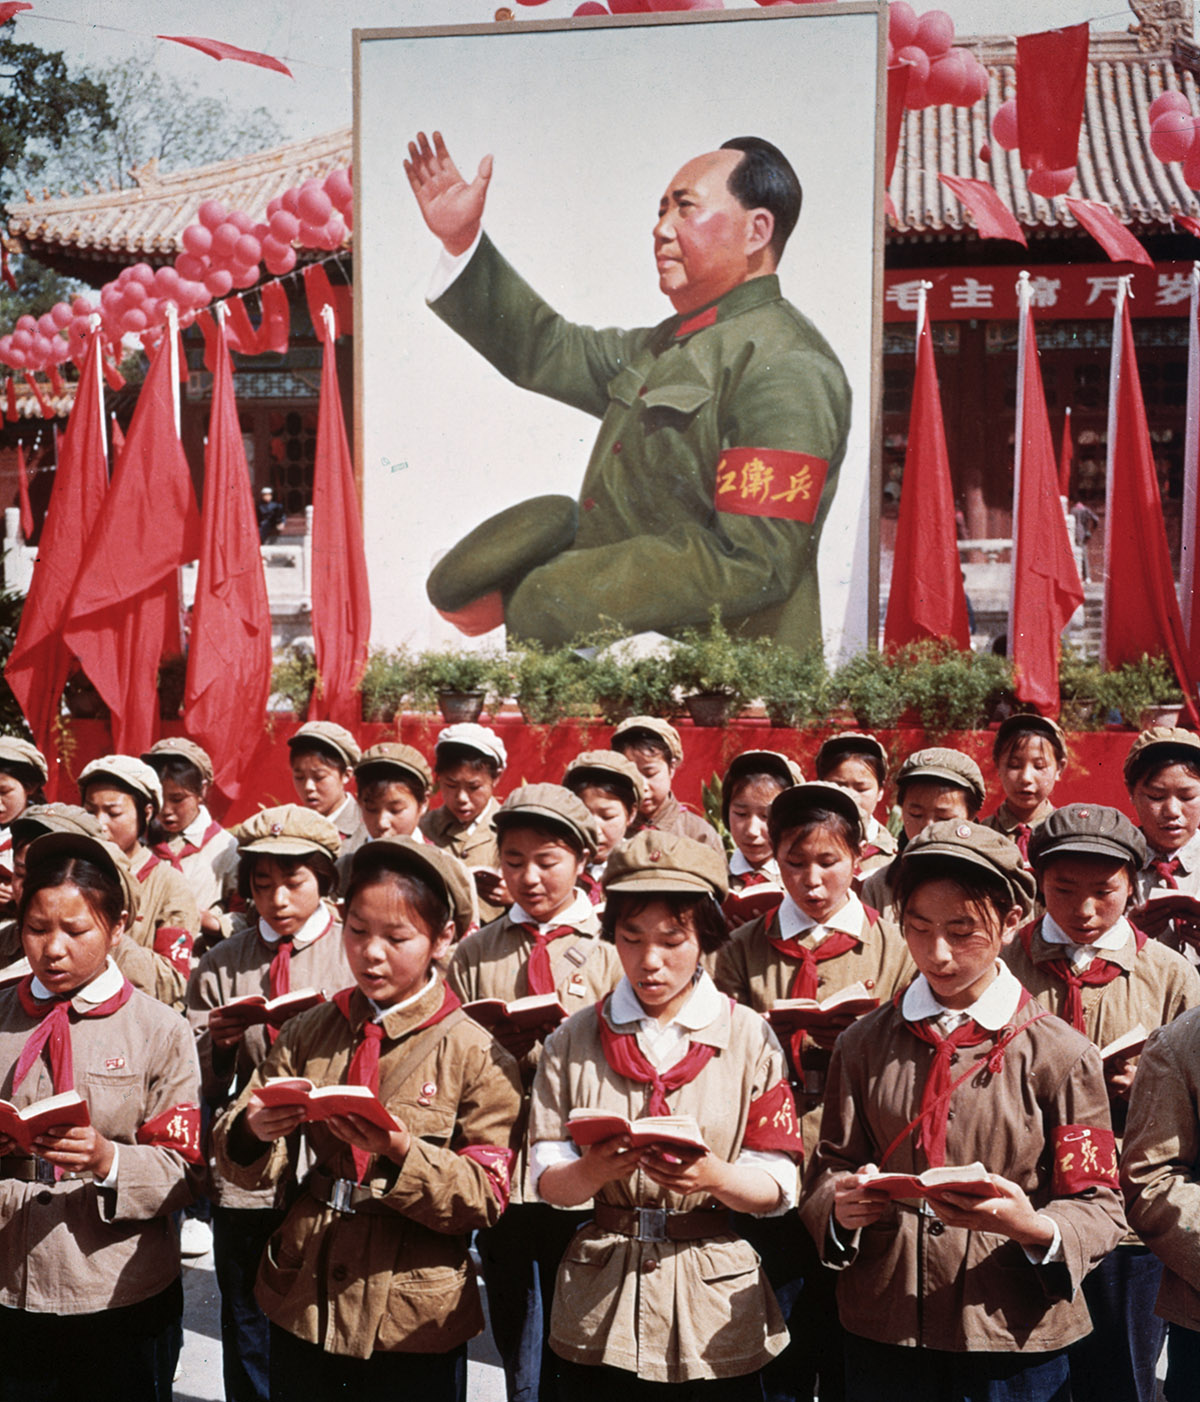 Children in uniform standing in rows, holding red booklets in front of painting of Mao Zedong